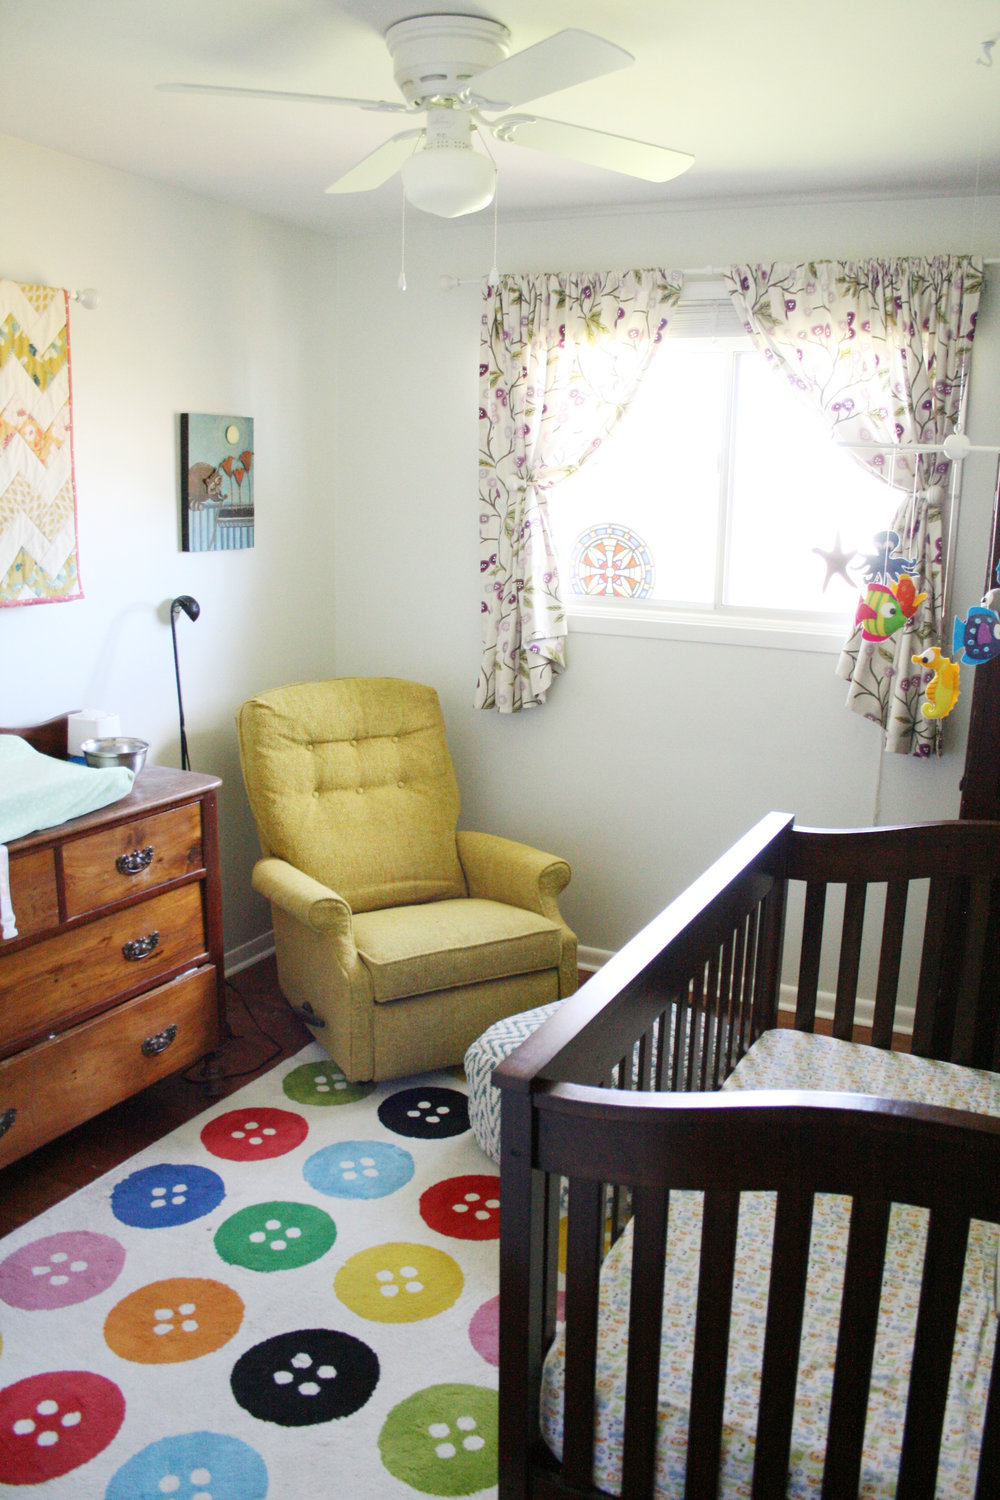 Molly's nursery! I still love this room so much. The dresser was mine when I was little, we thrifted the chair, I made the curtains and the mobile and many of my fabulously artsy friends made her artwork!